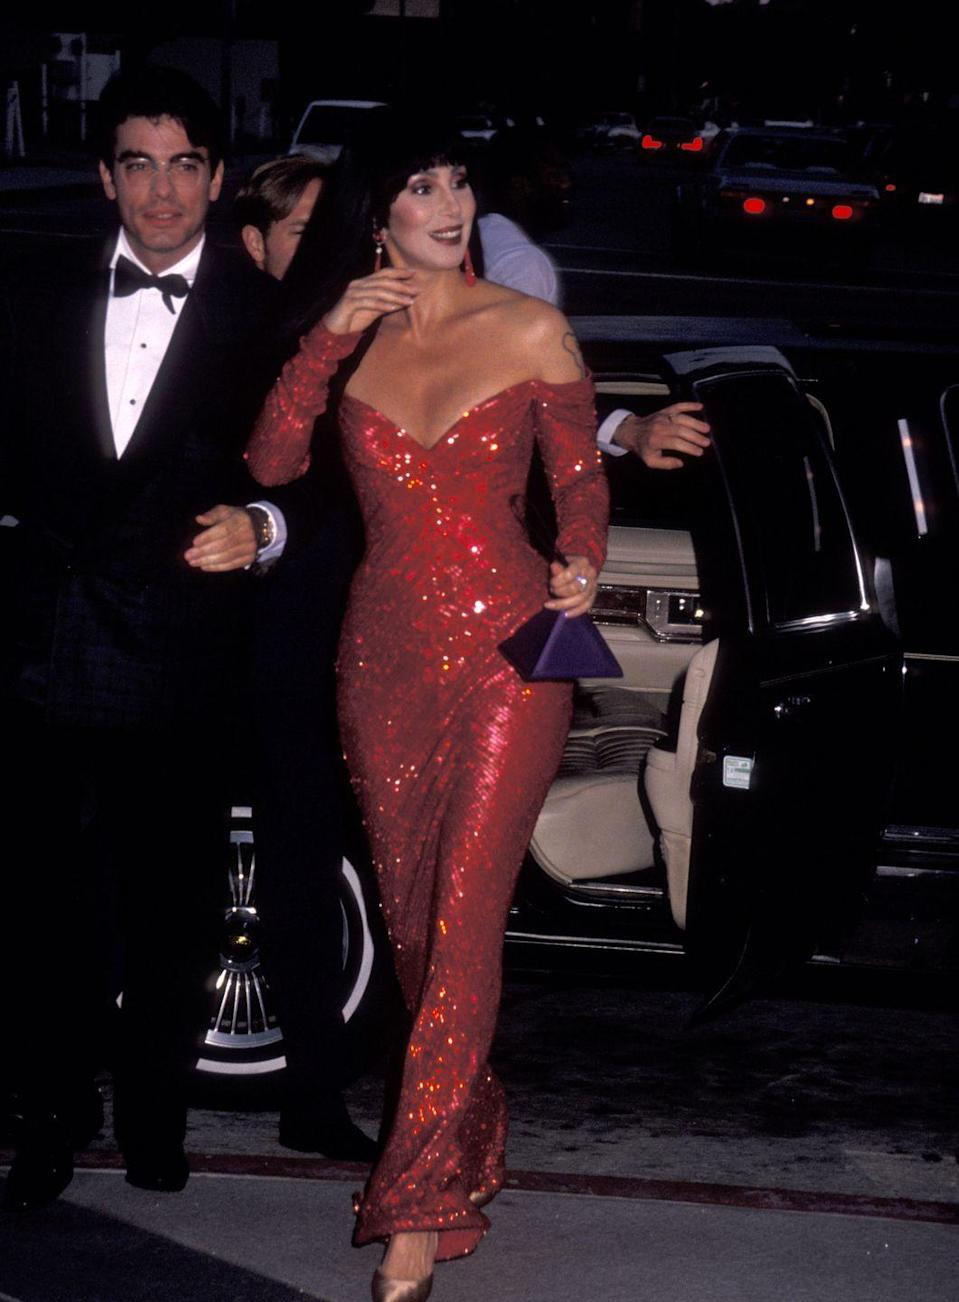 <p>Filming a scene for <em>The Player</em> with Peter Gallagher in a red sequin gown and tassel earrings. </p>